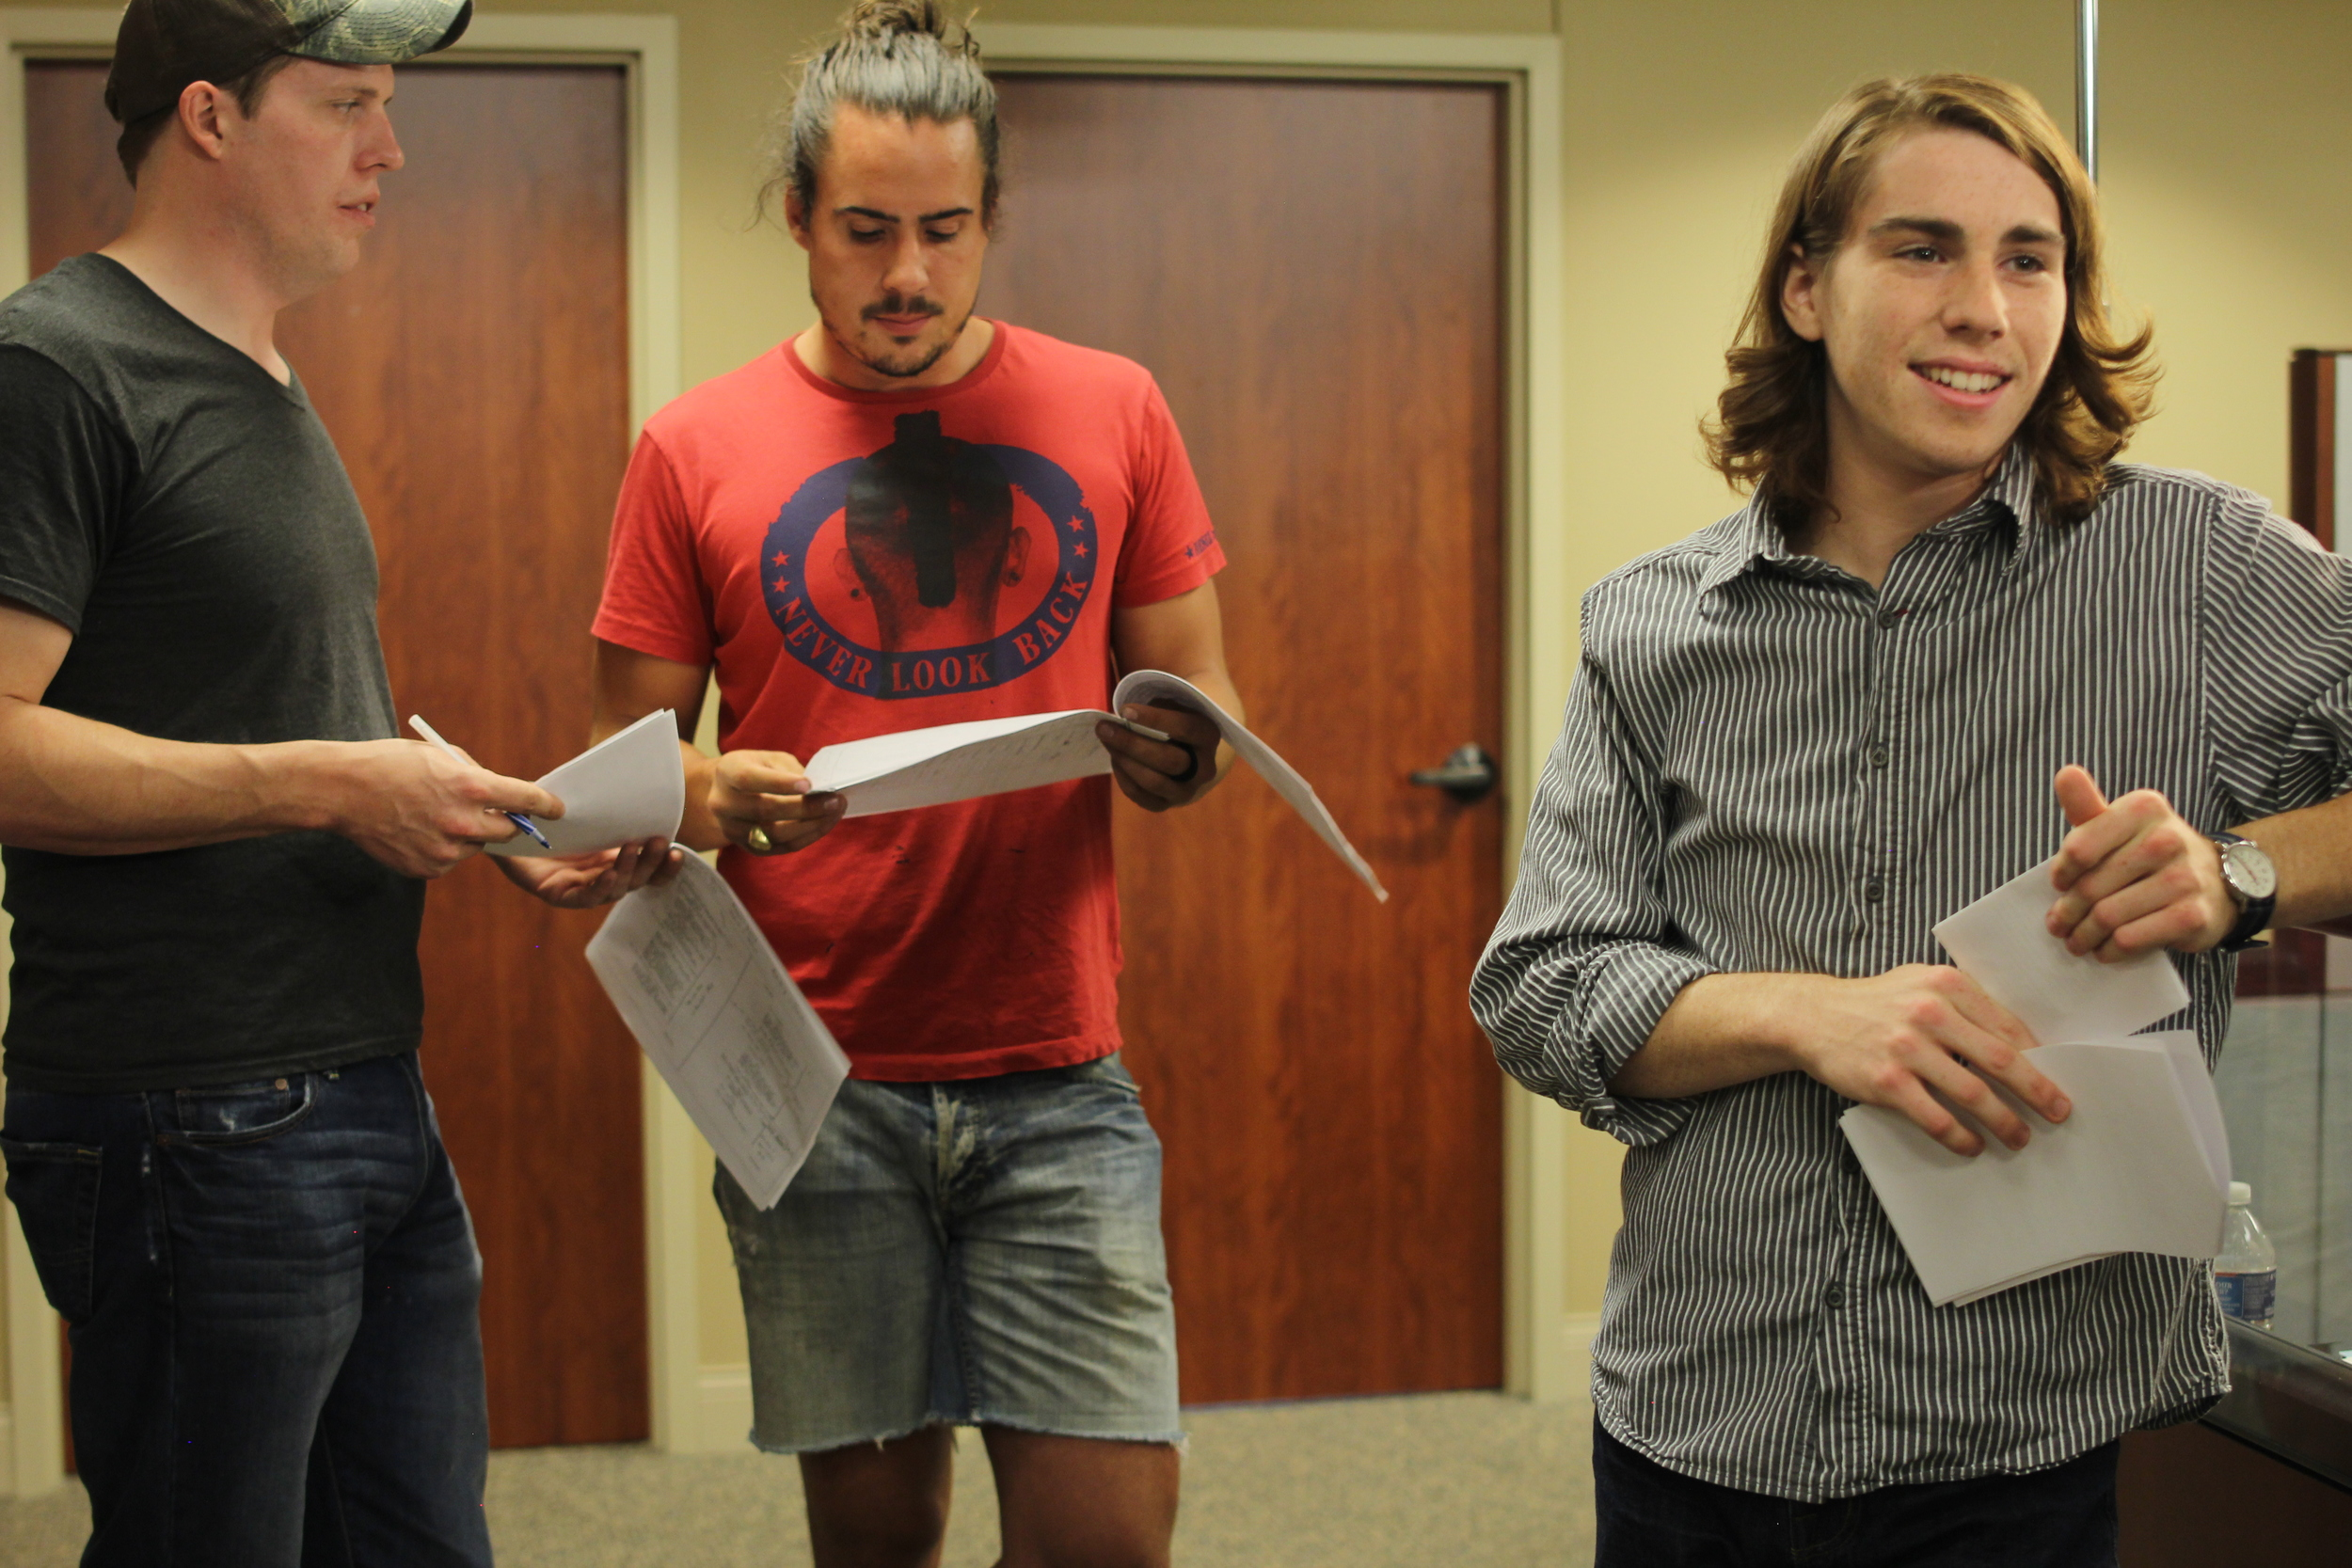 Luke McGowan (AD), Carroll Keane (Director), & Harrison Farmer (Actor)